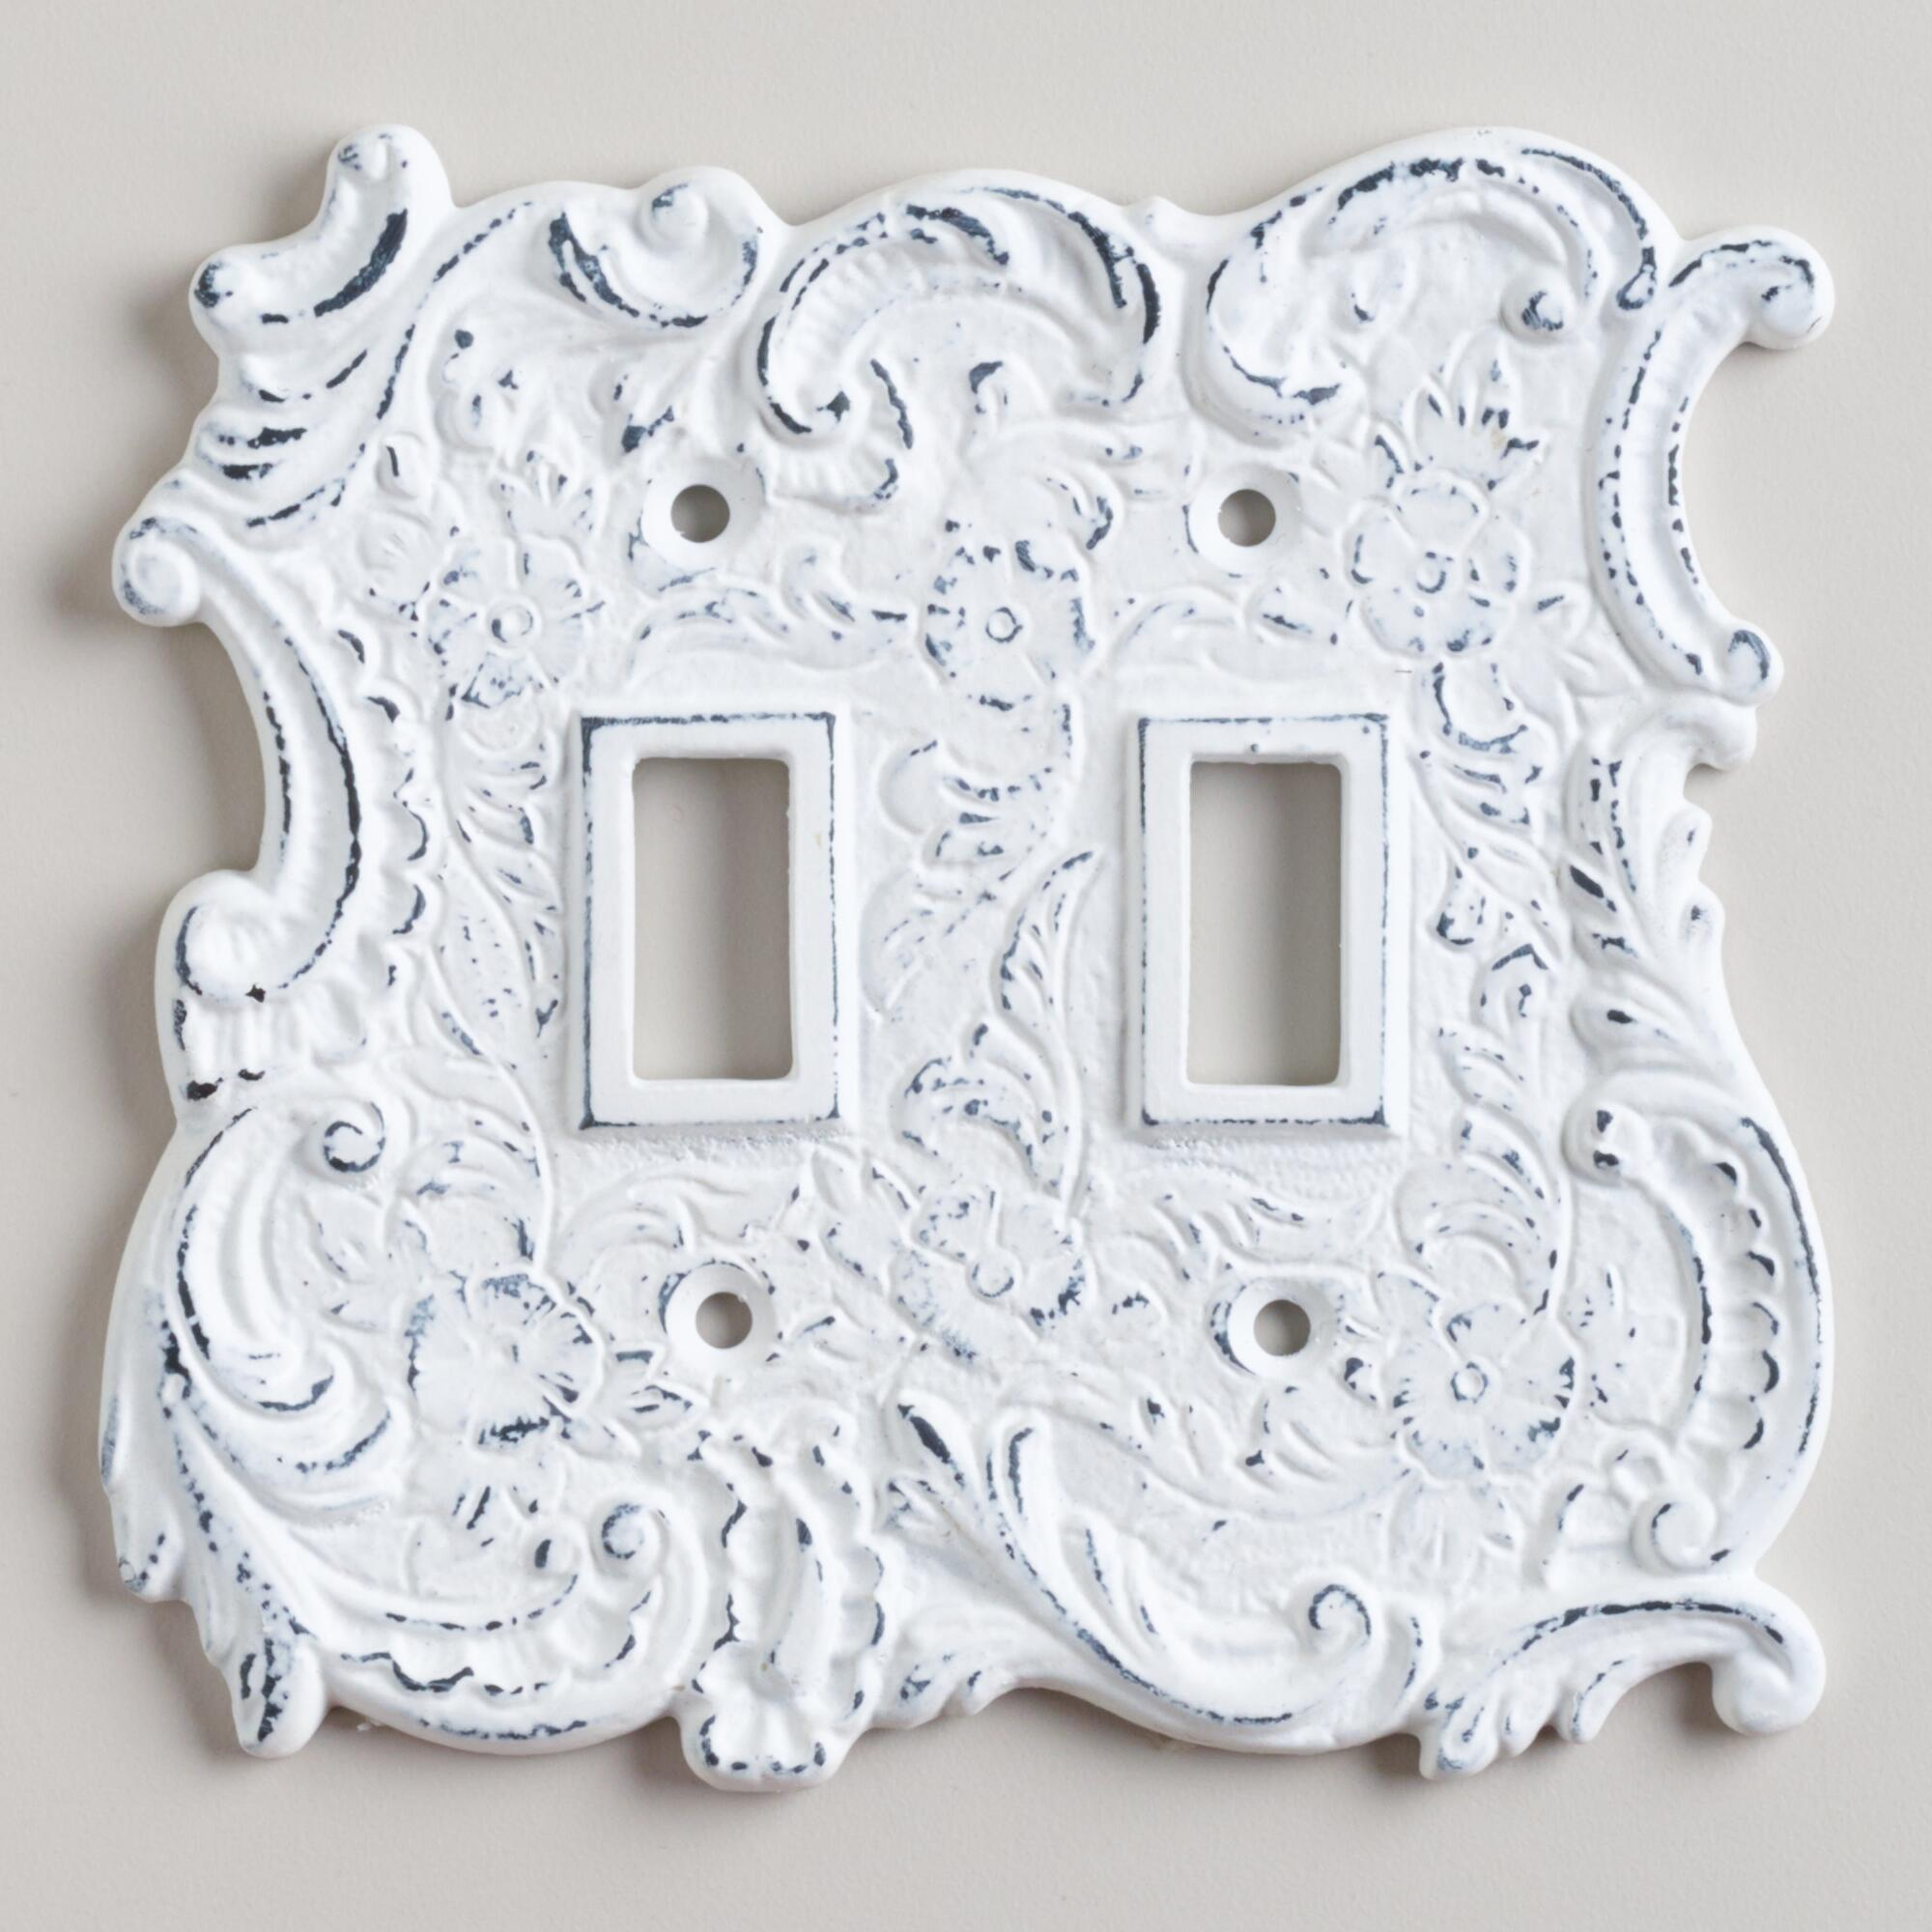 White cast iron double switch plate world market - Wall switch plates decorative ...